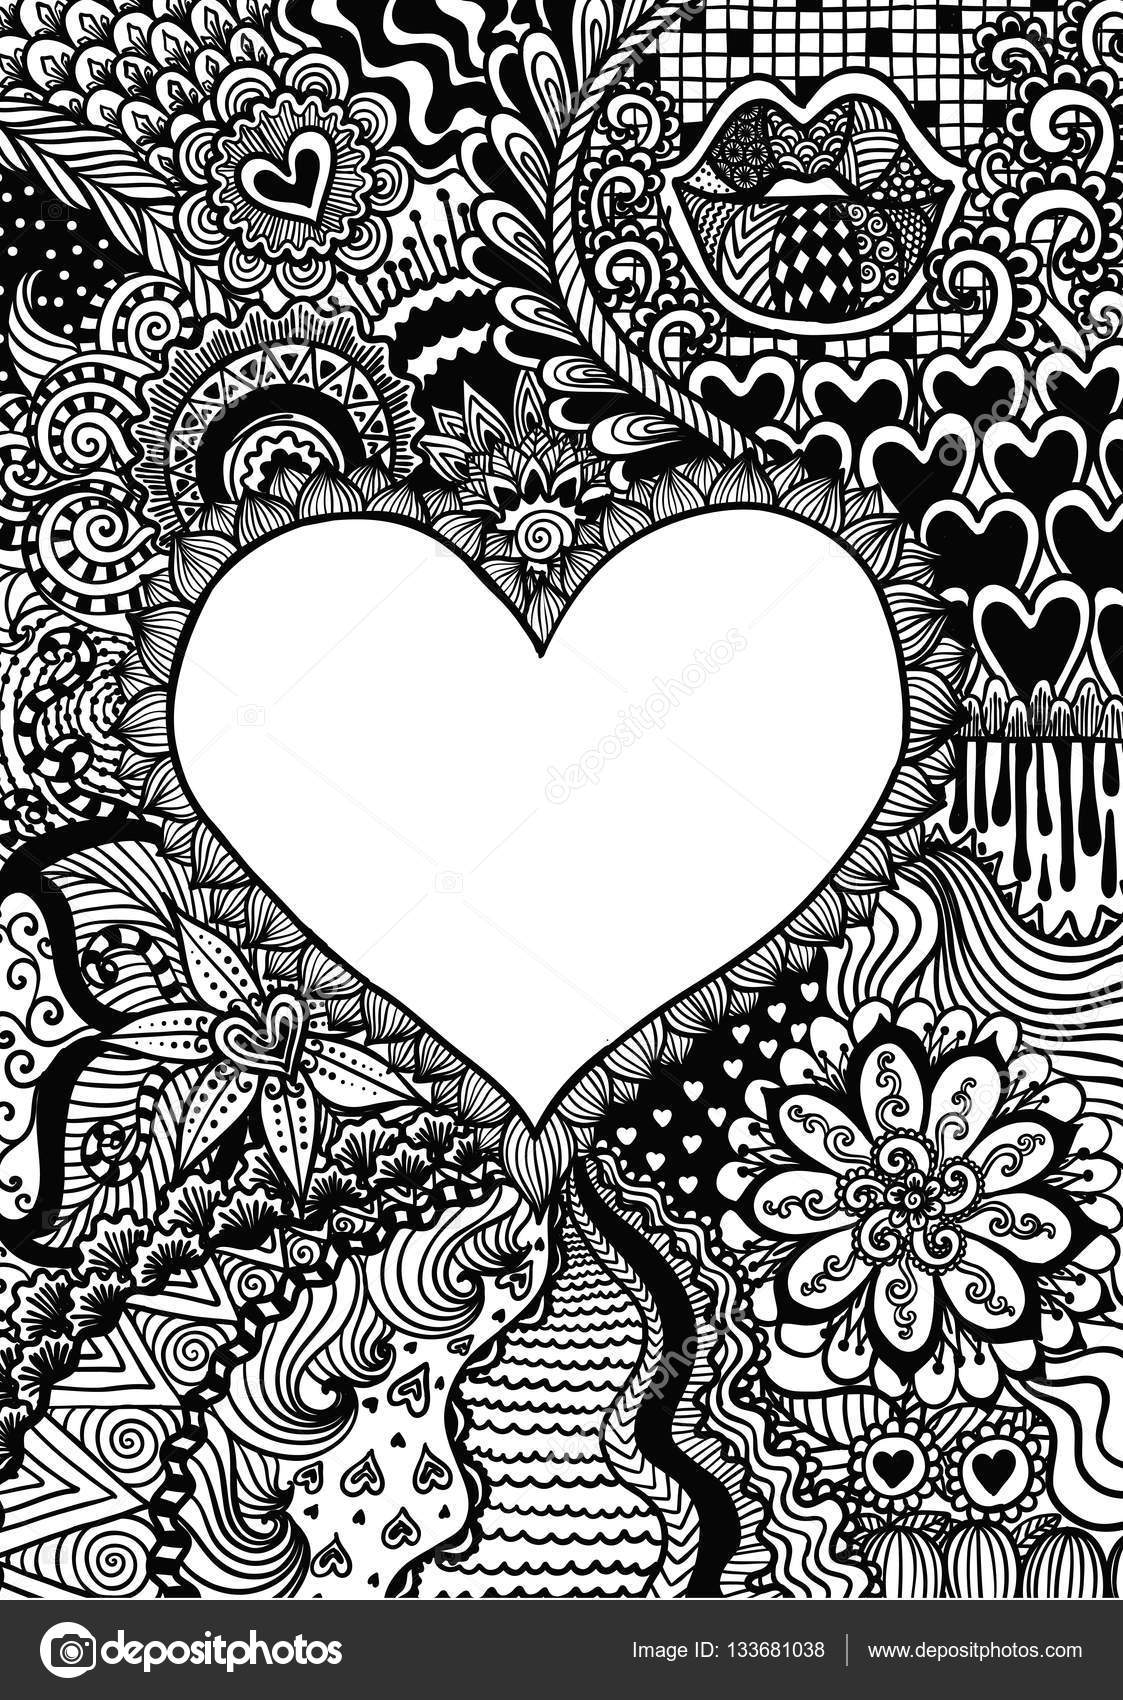 Zendoodle Design Of Heart Shape On Abstract Line Art Background For Backgroundwedding Carddesign Element And Adult Coloring Book Anti Stress